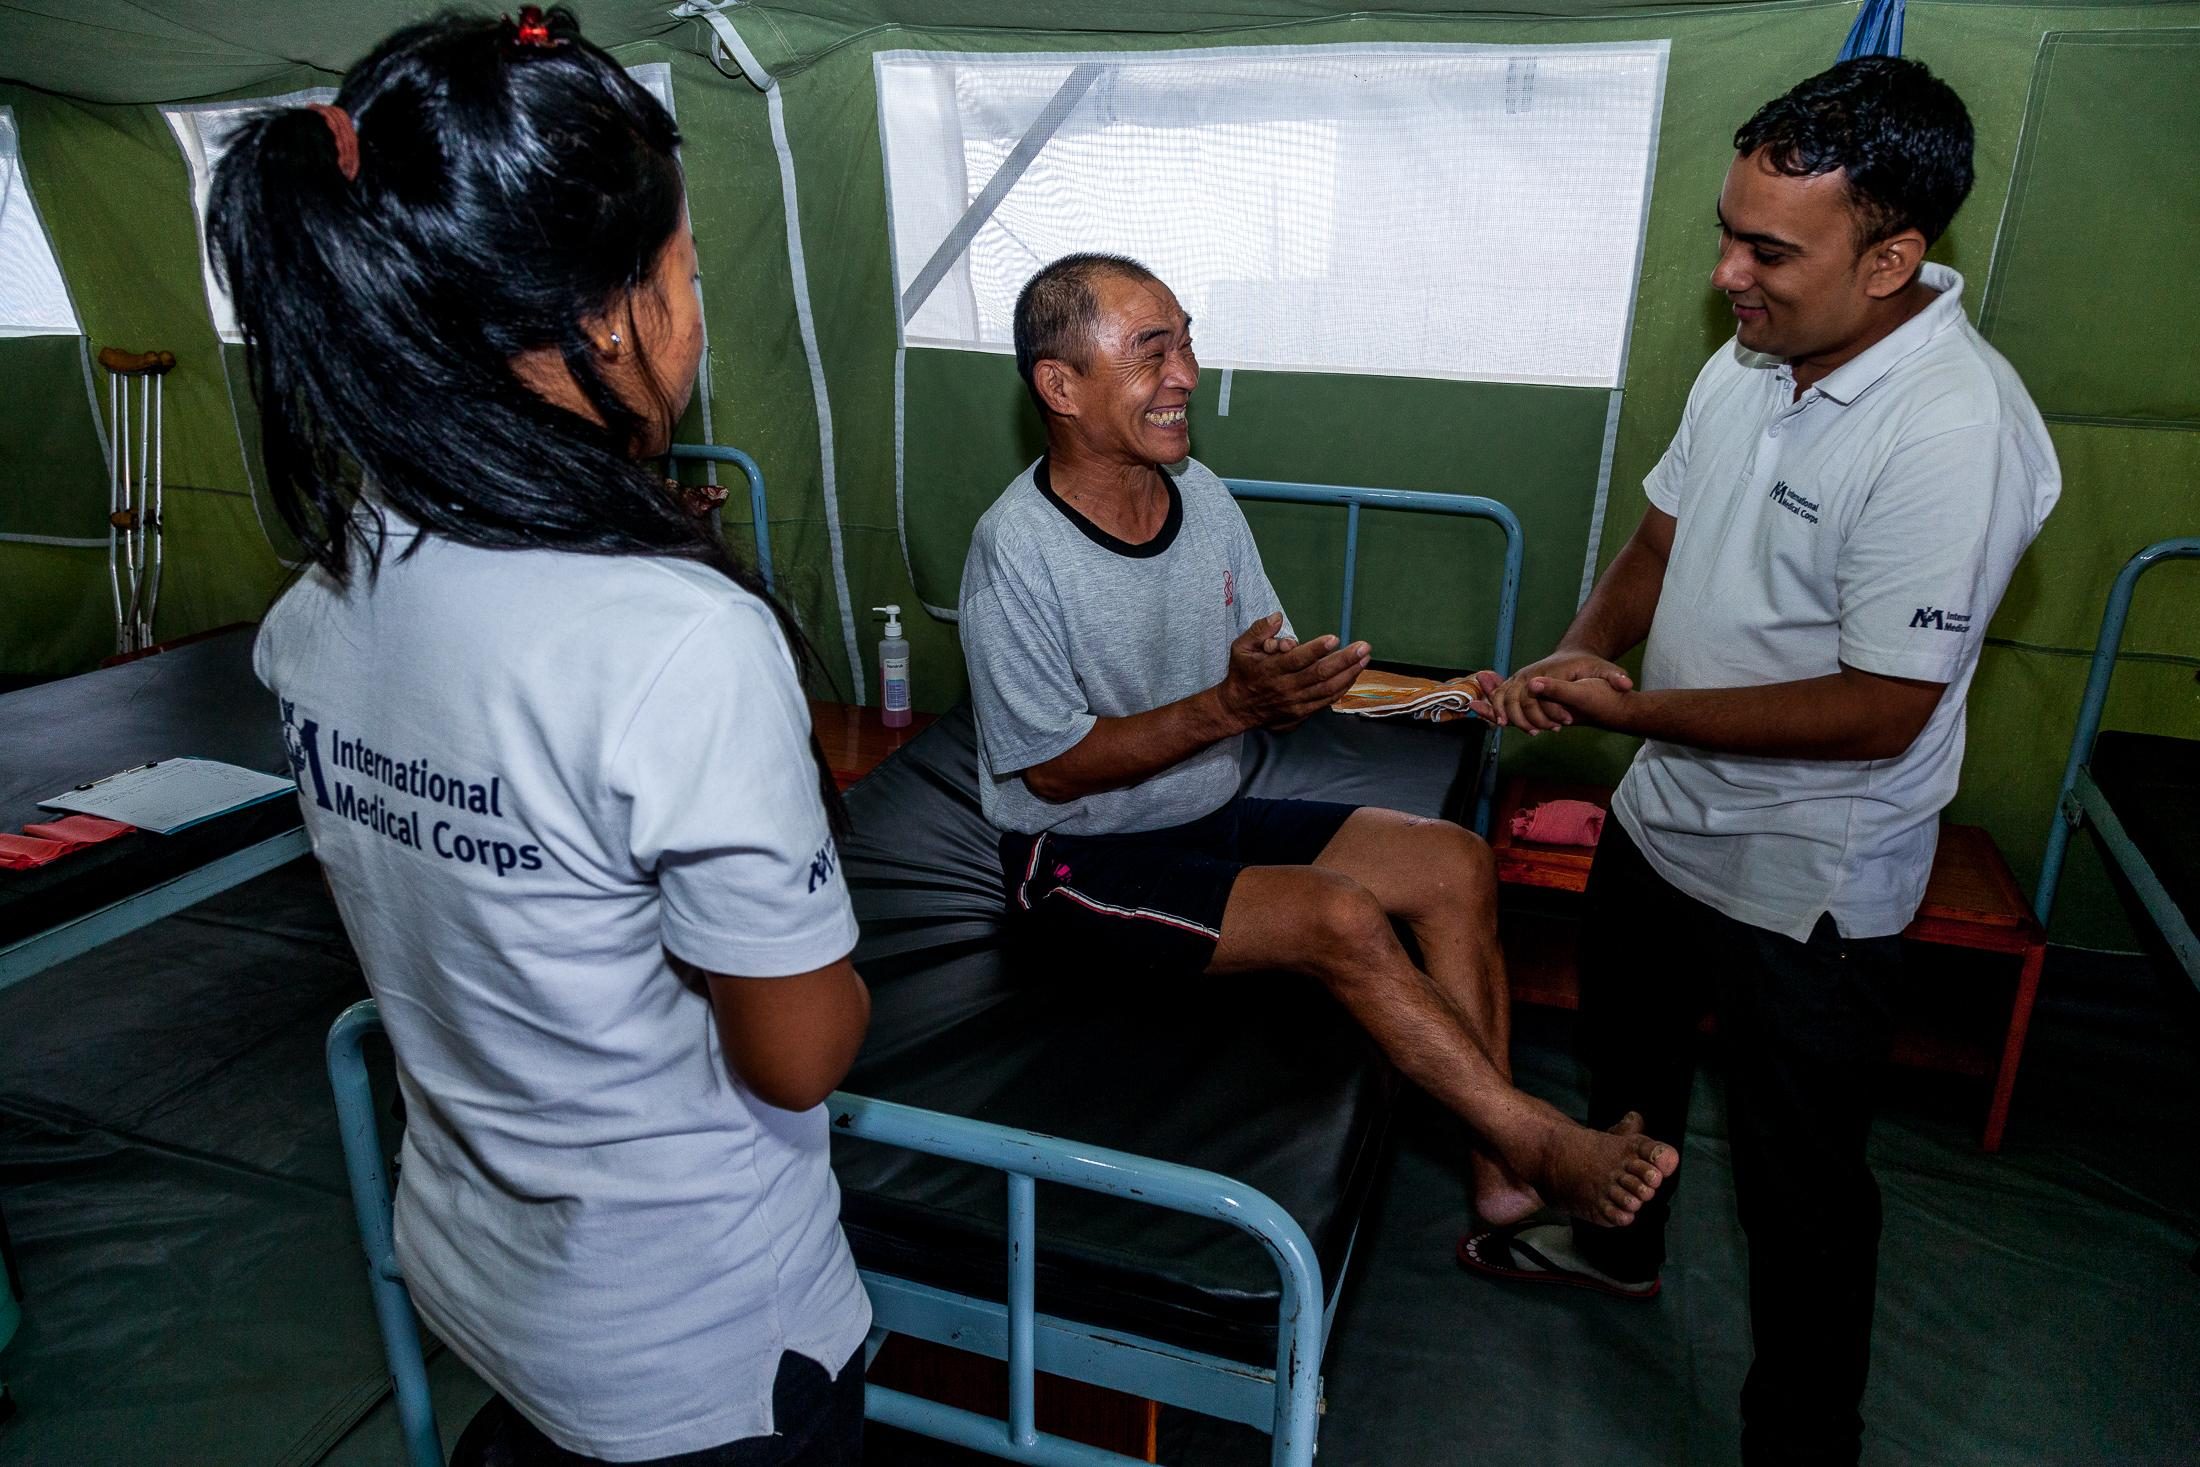 GORKHA, NEPAL - August 21: IMC staff members speak to Dhan Singh Gurung inside the new physiotherapy unit set up by International Medical Corps in Gorkha, Nepal. On 25 April when the earthquake struck Nepal, Dhan Singh Gurung was herding cattle with his friends in Gumda, a village bordering the epicenter of the earthquake. Before he could run, he was swept off his feet by an avalanche – which saved his life. 'The avalanche tossed me into a nook on the side of a cliff,' Gurung explains. 'Squinting through dust, I witnessed the landslide running its course above me. I had been spared.' Photo: © Omar Havana for International Medical Corps